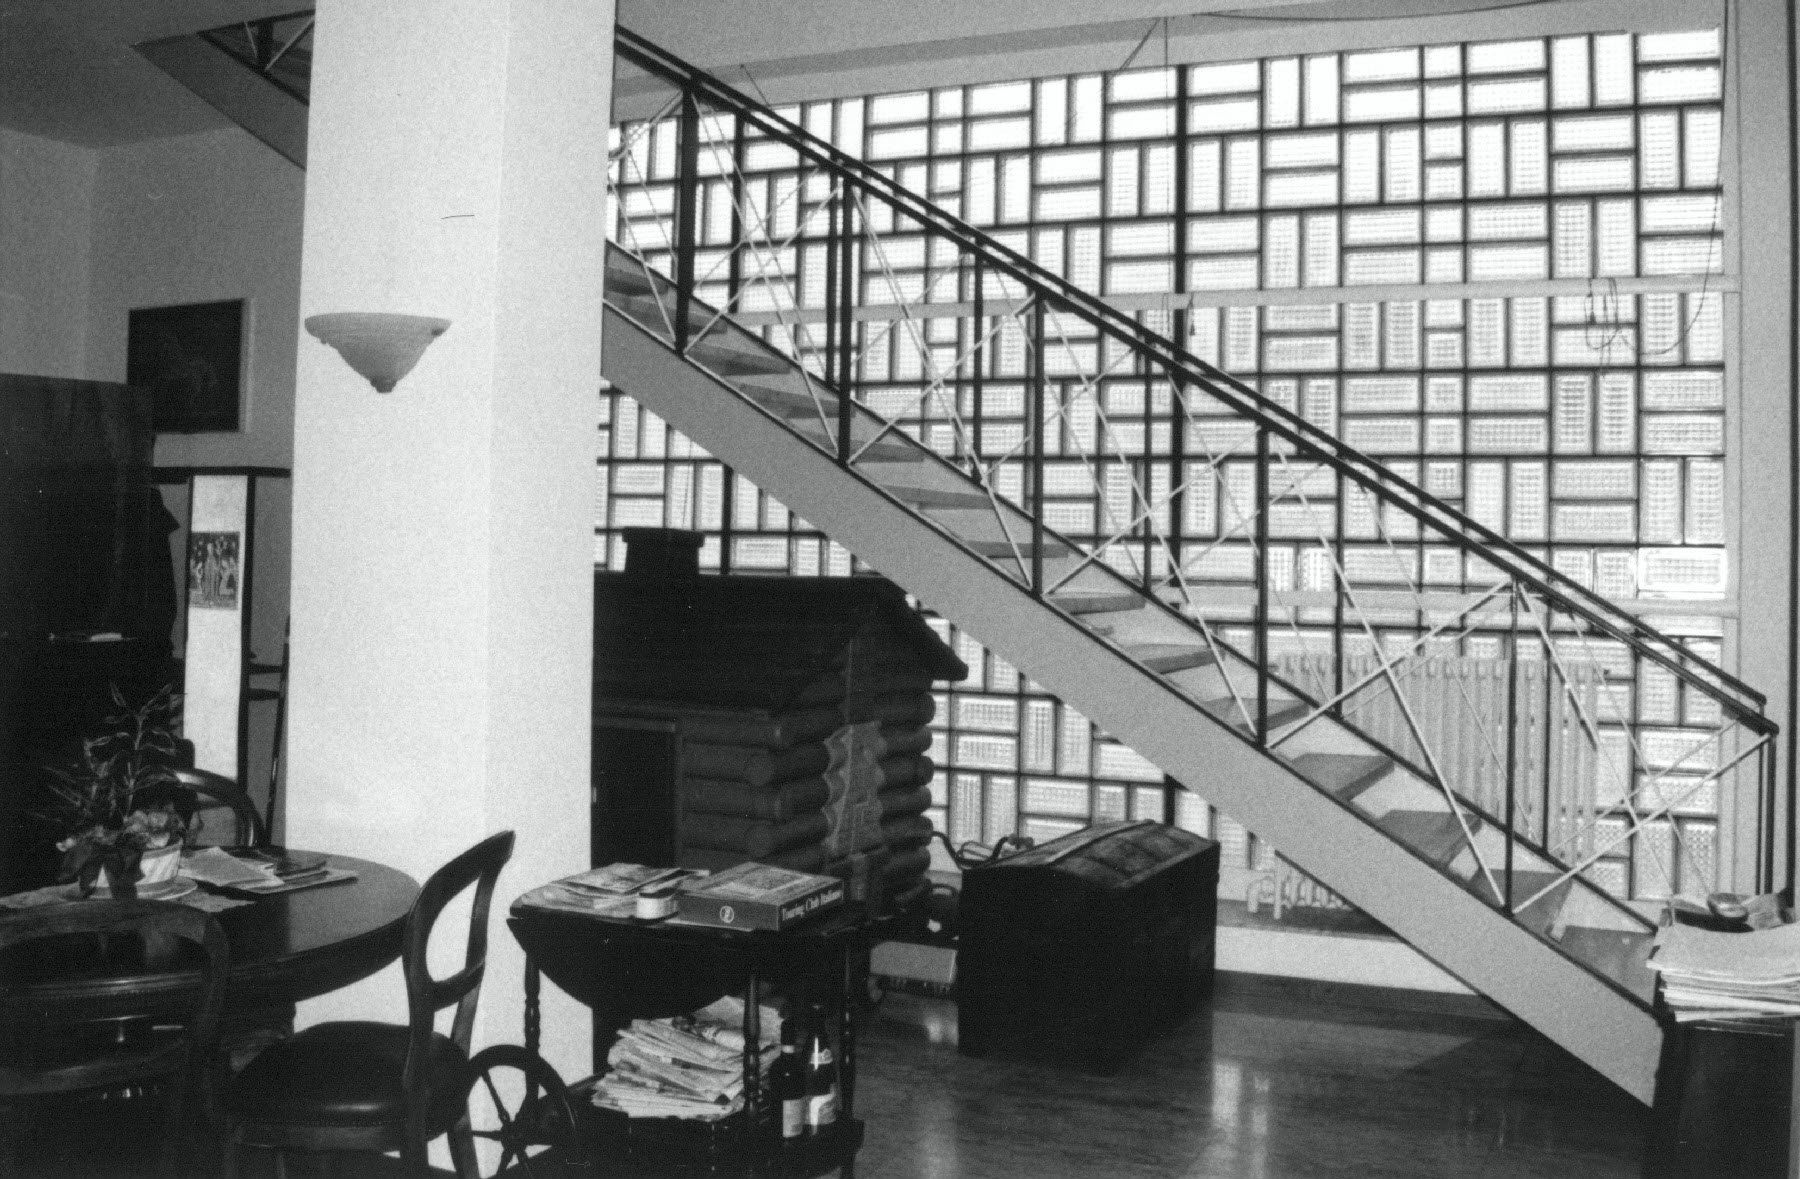 Interior View Of Stairs